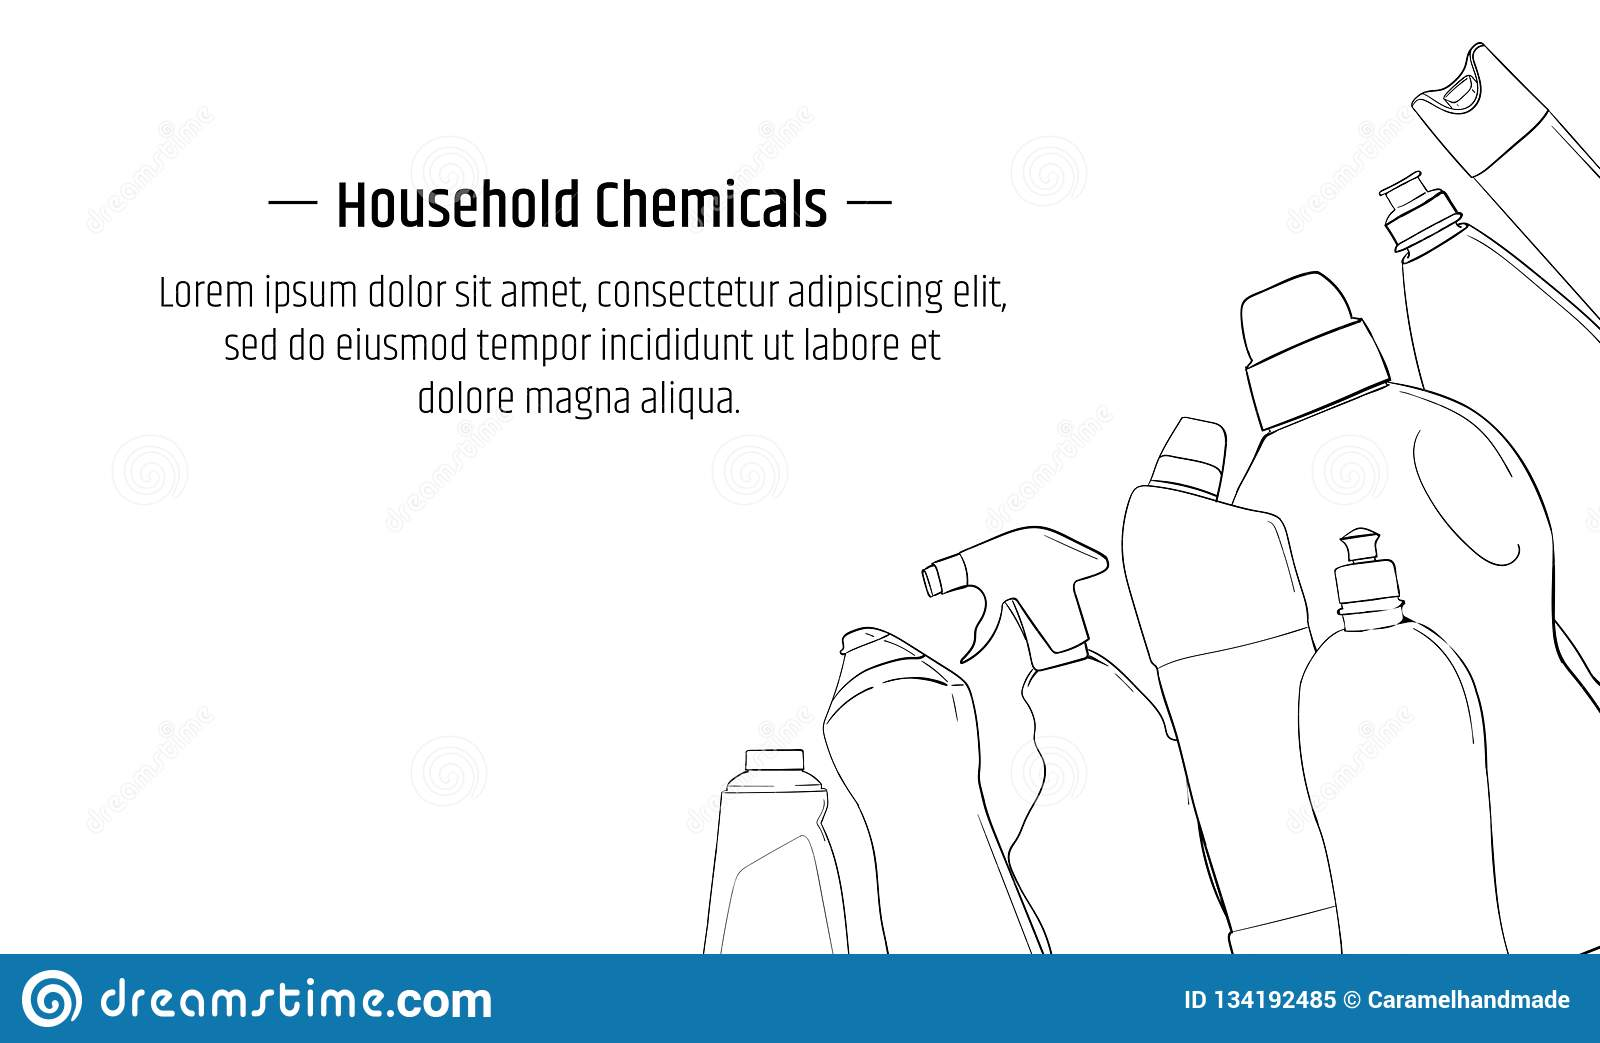 Detergent bottle and chemicals household product banner template.